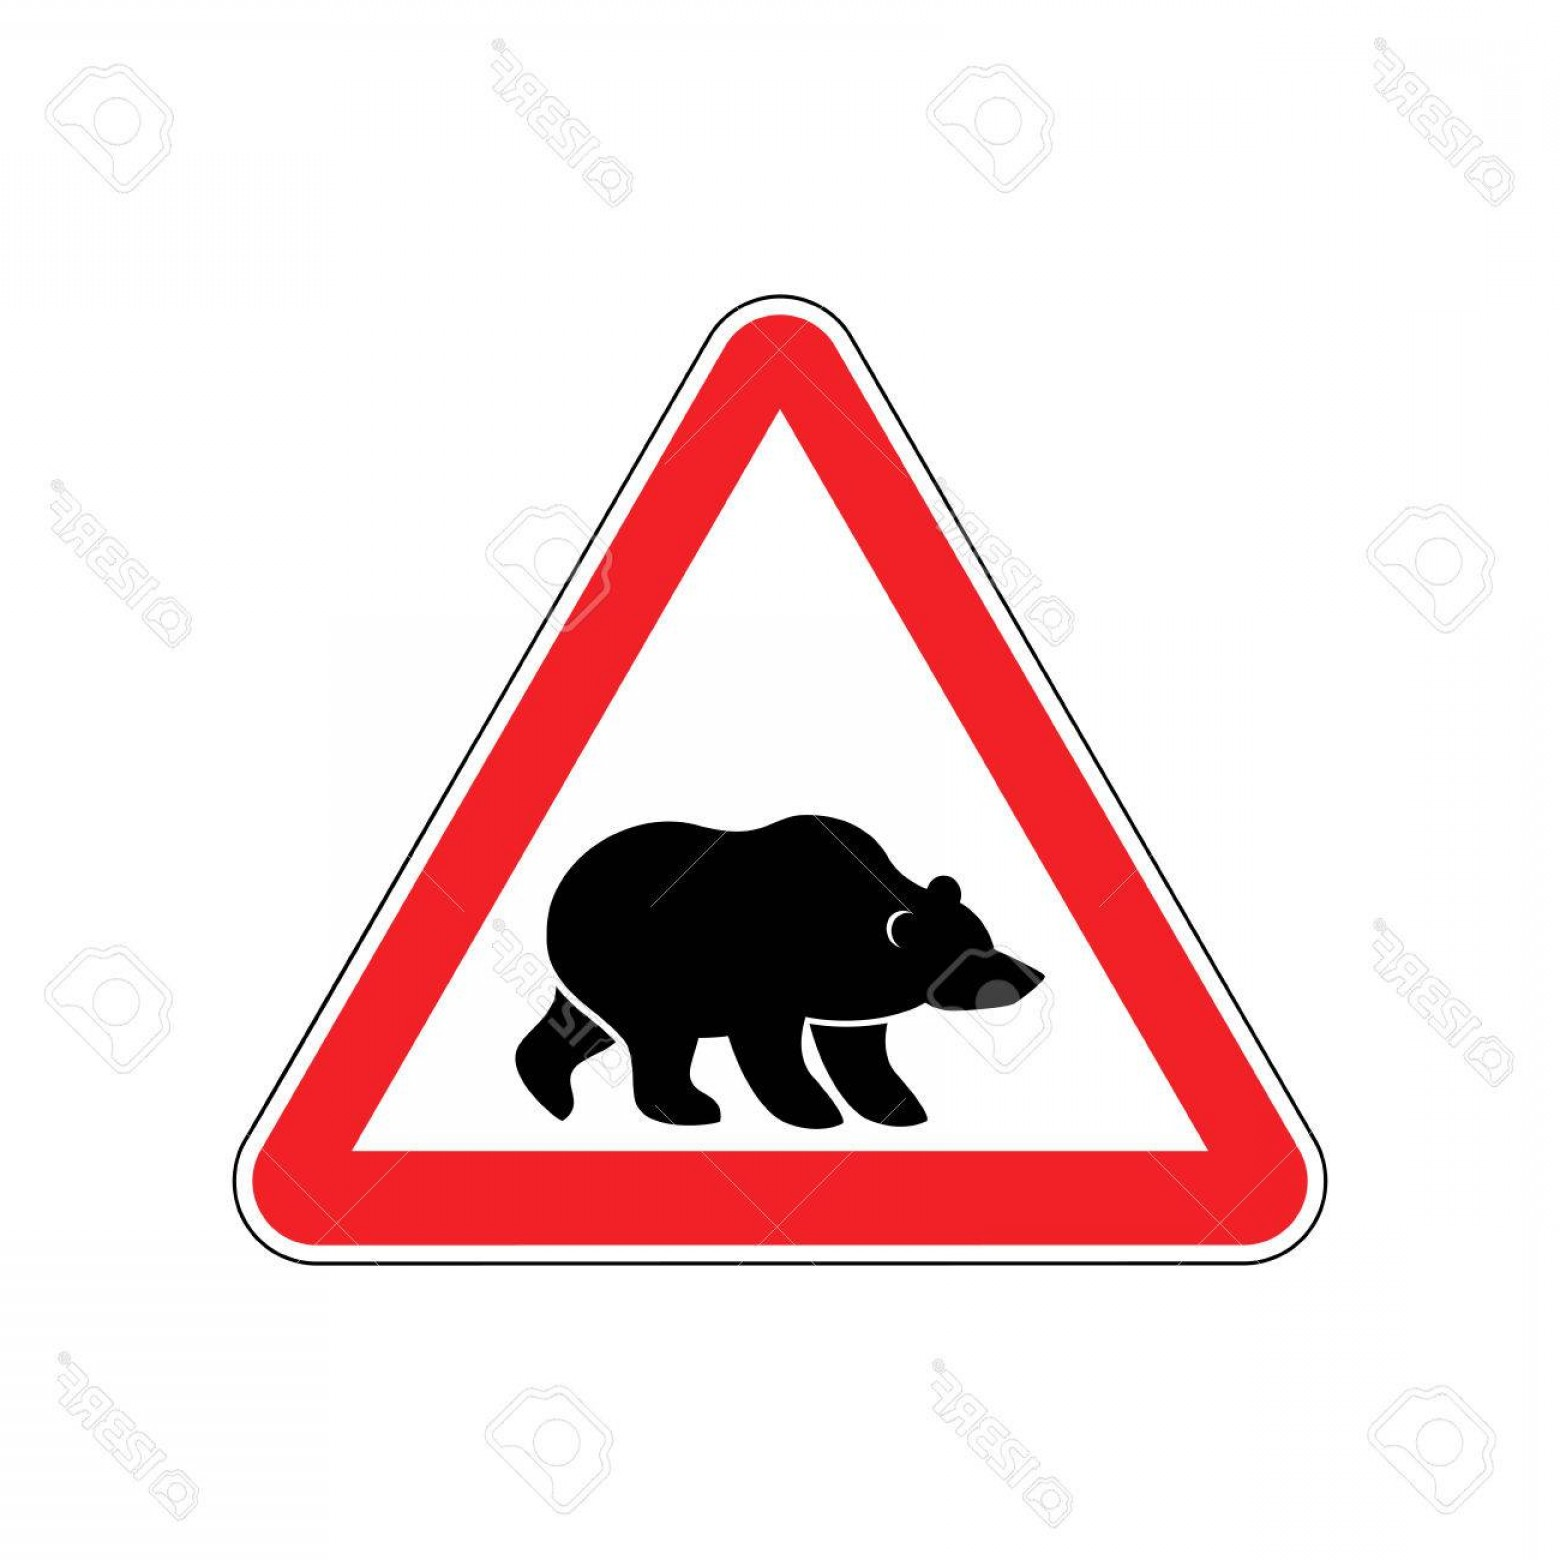 Road Sign Silhouette Vector Bear: Photostock Vector Bear Warning Sign Red Predator Hazard Attention Symbol Danger Road Sign Triangle Wild Beast